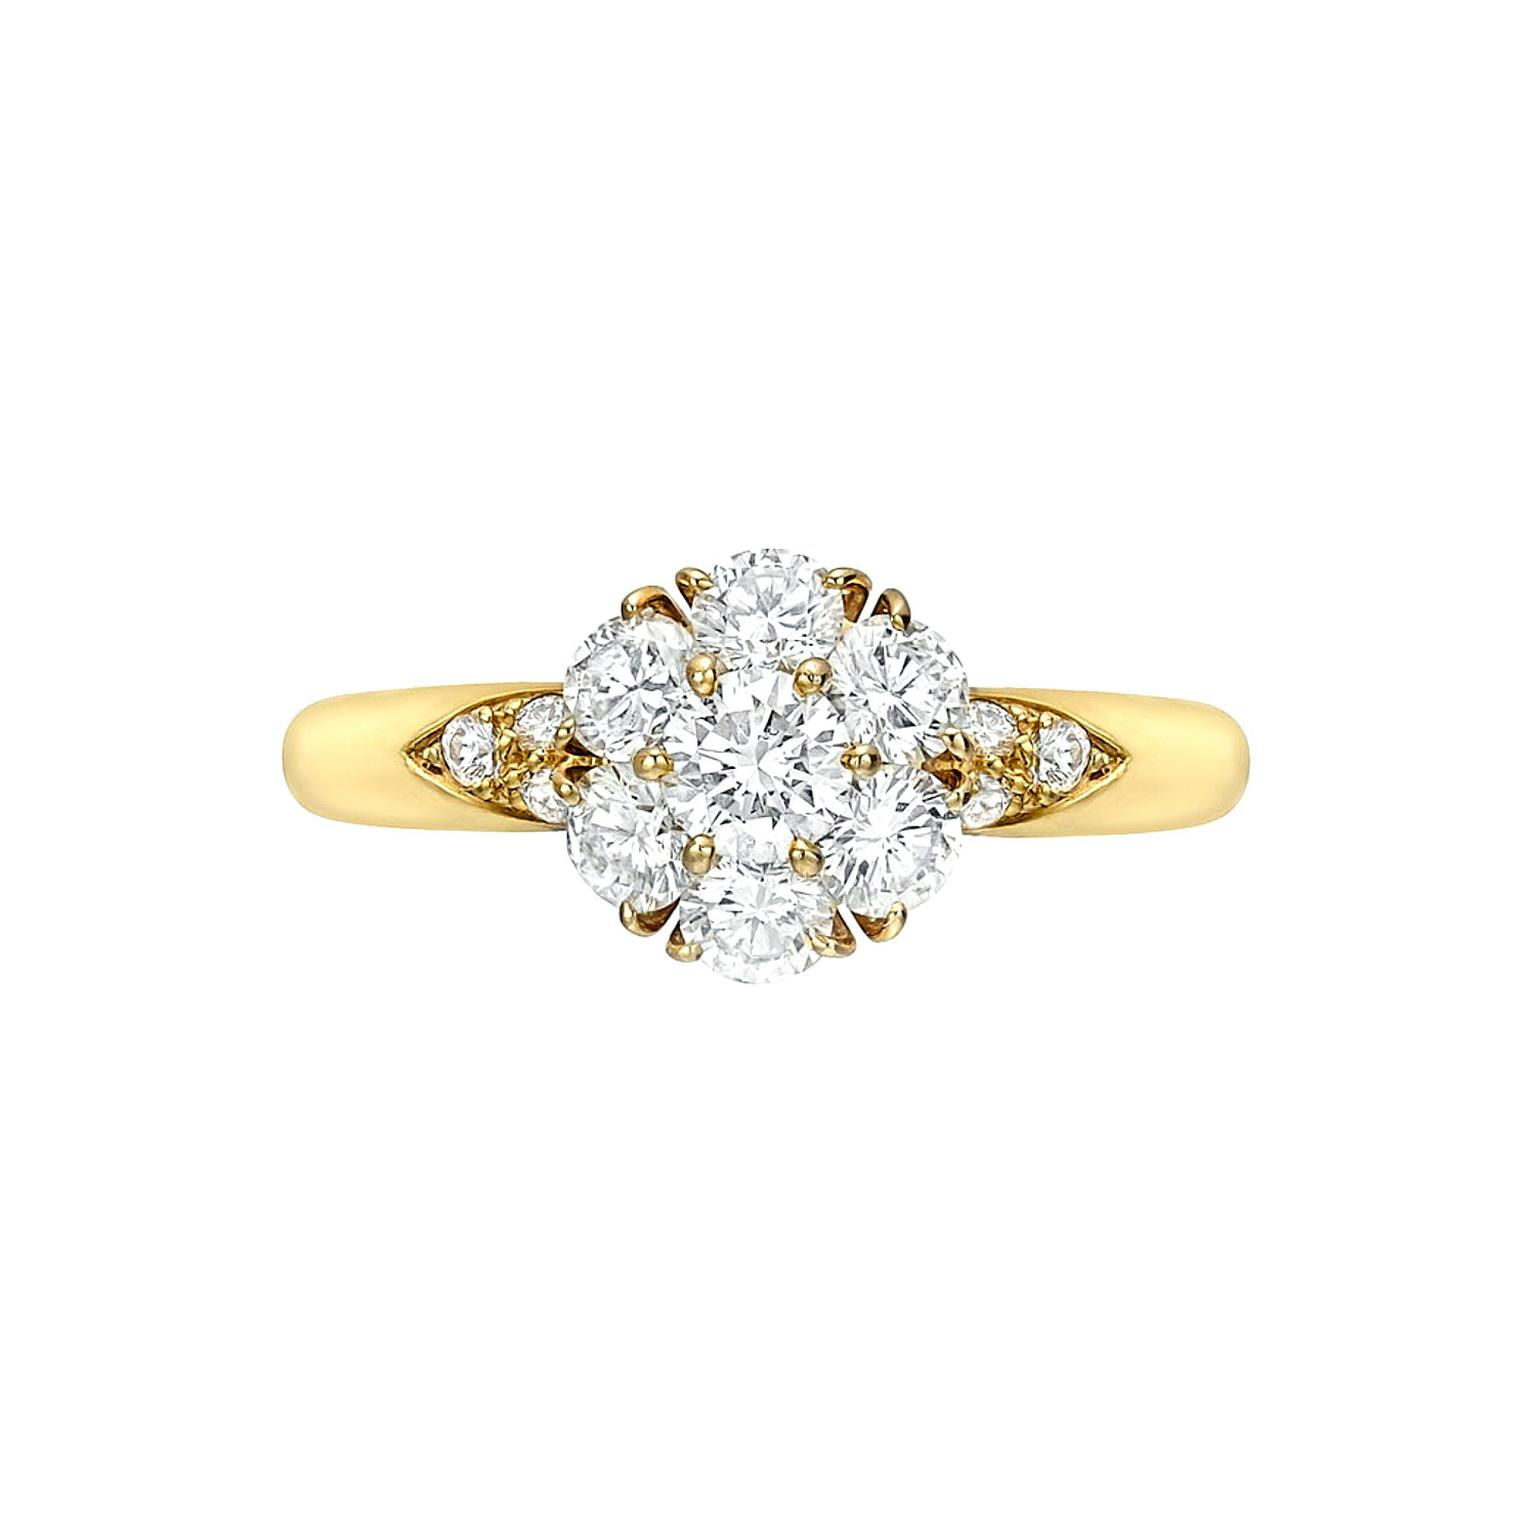 Cluster-set Van Cleef & Arpels engagement ring